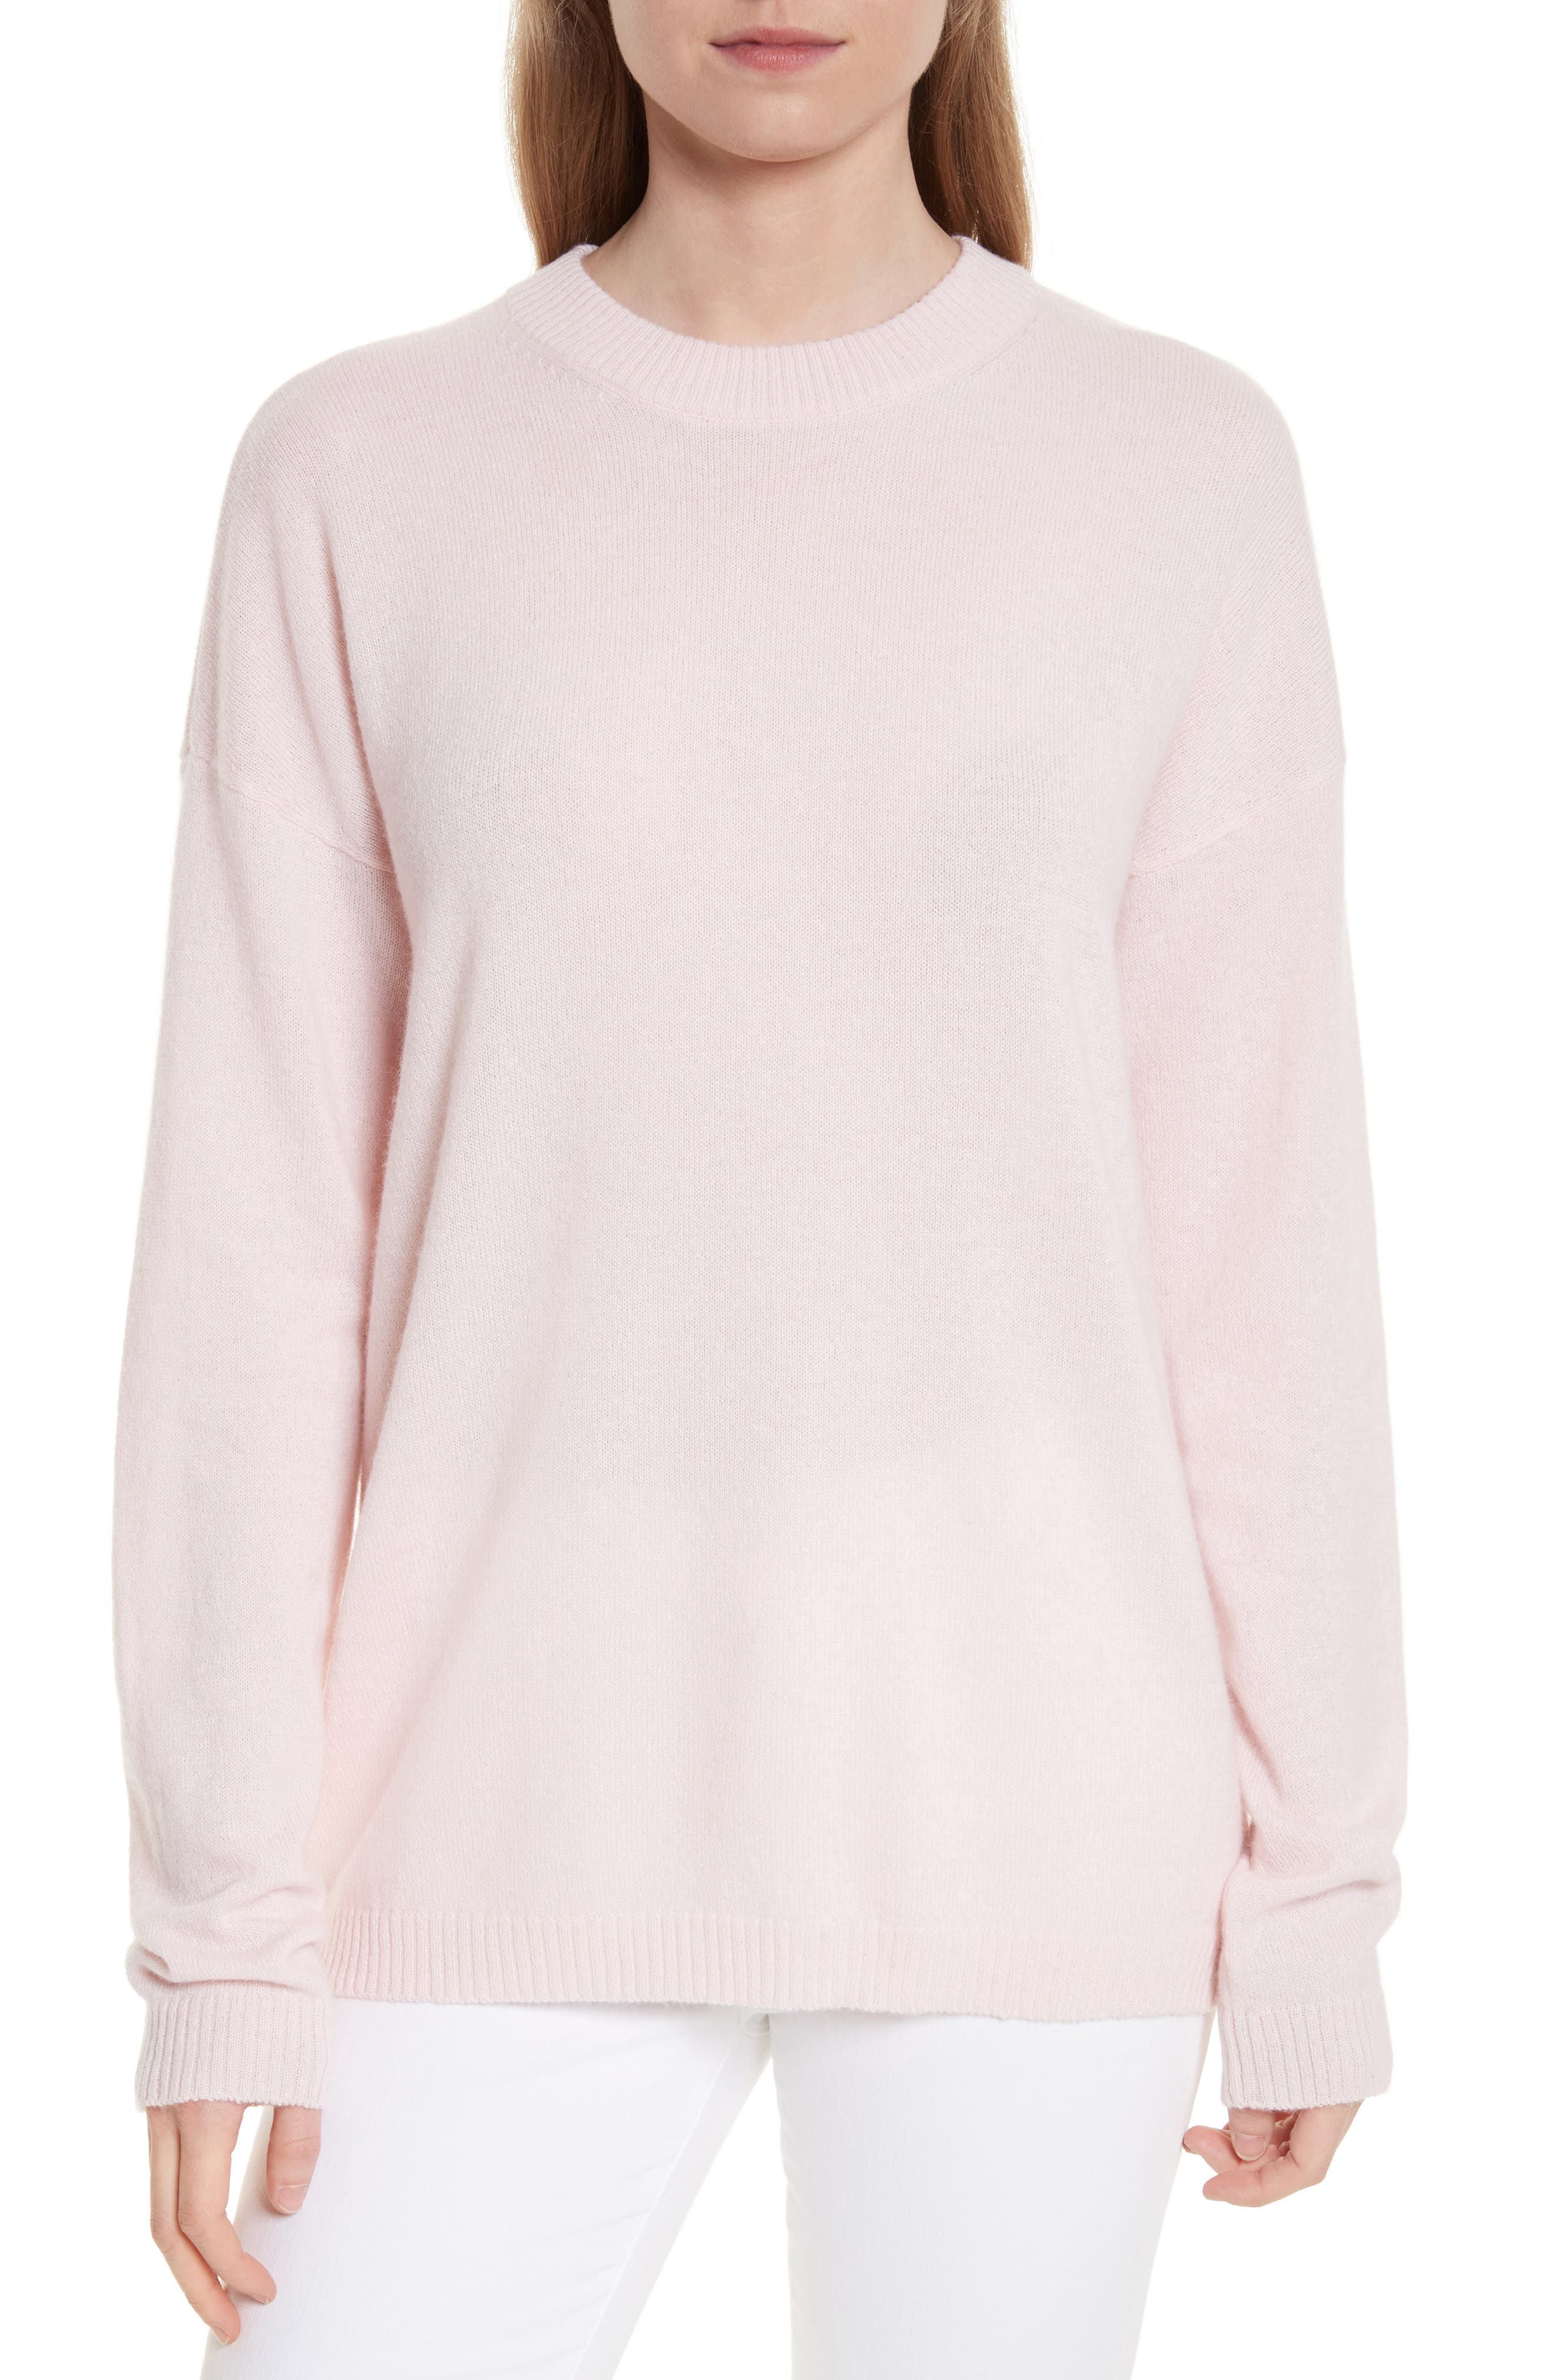 Main Image - Equipment Bryce Oversize Cashmere Sweater